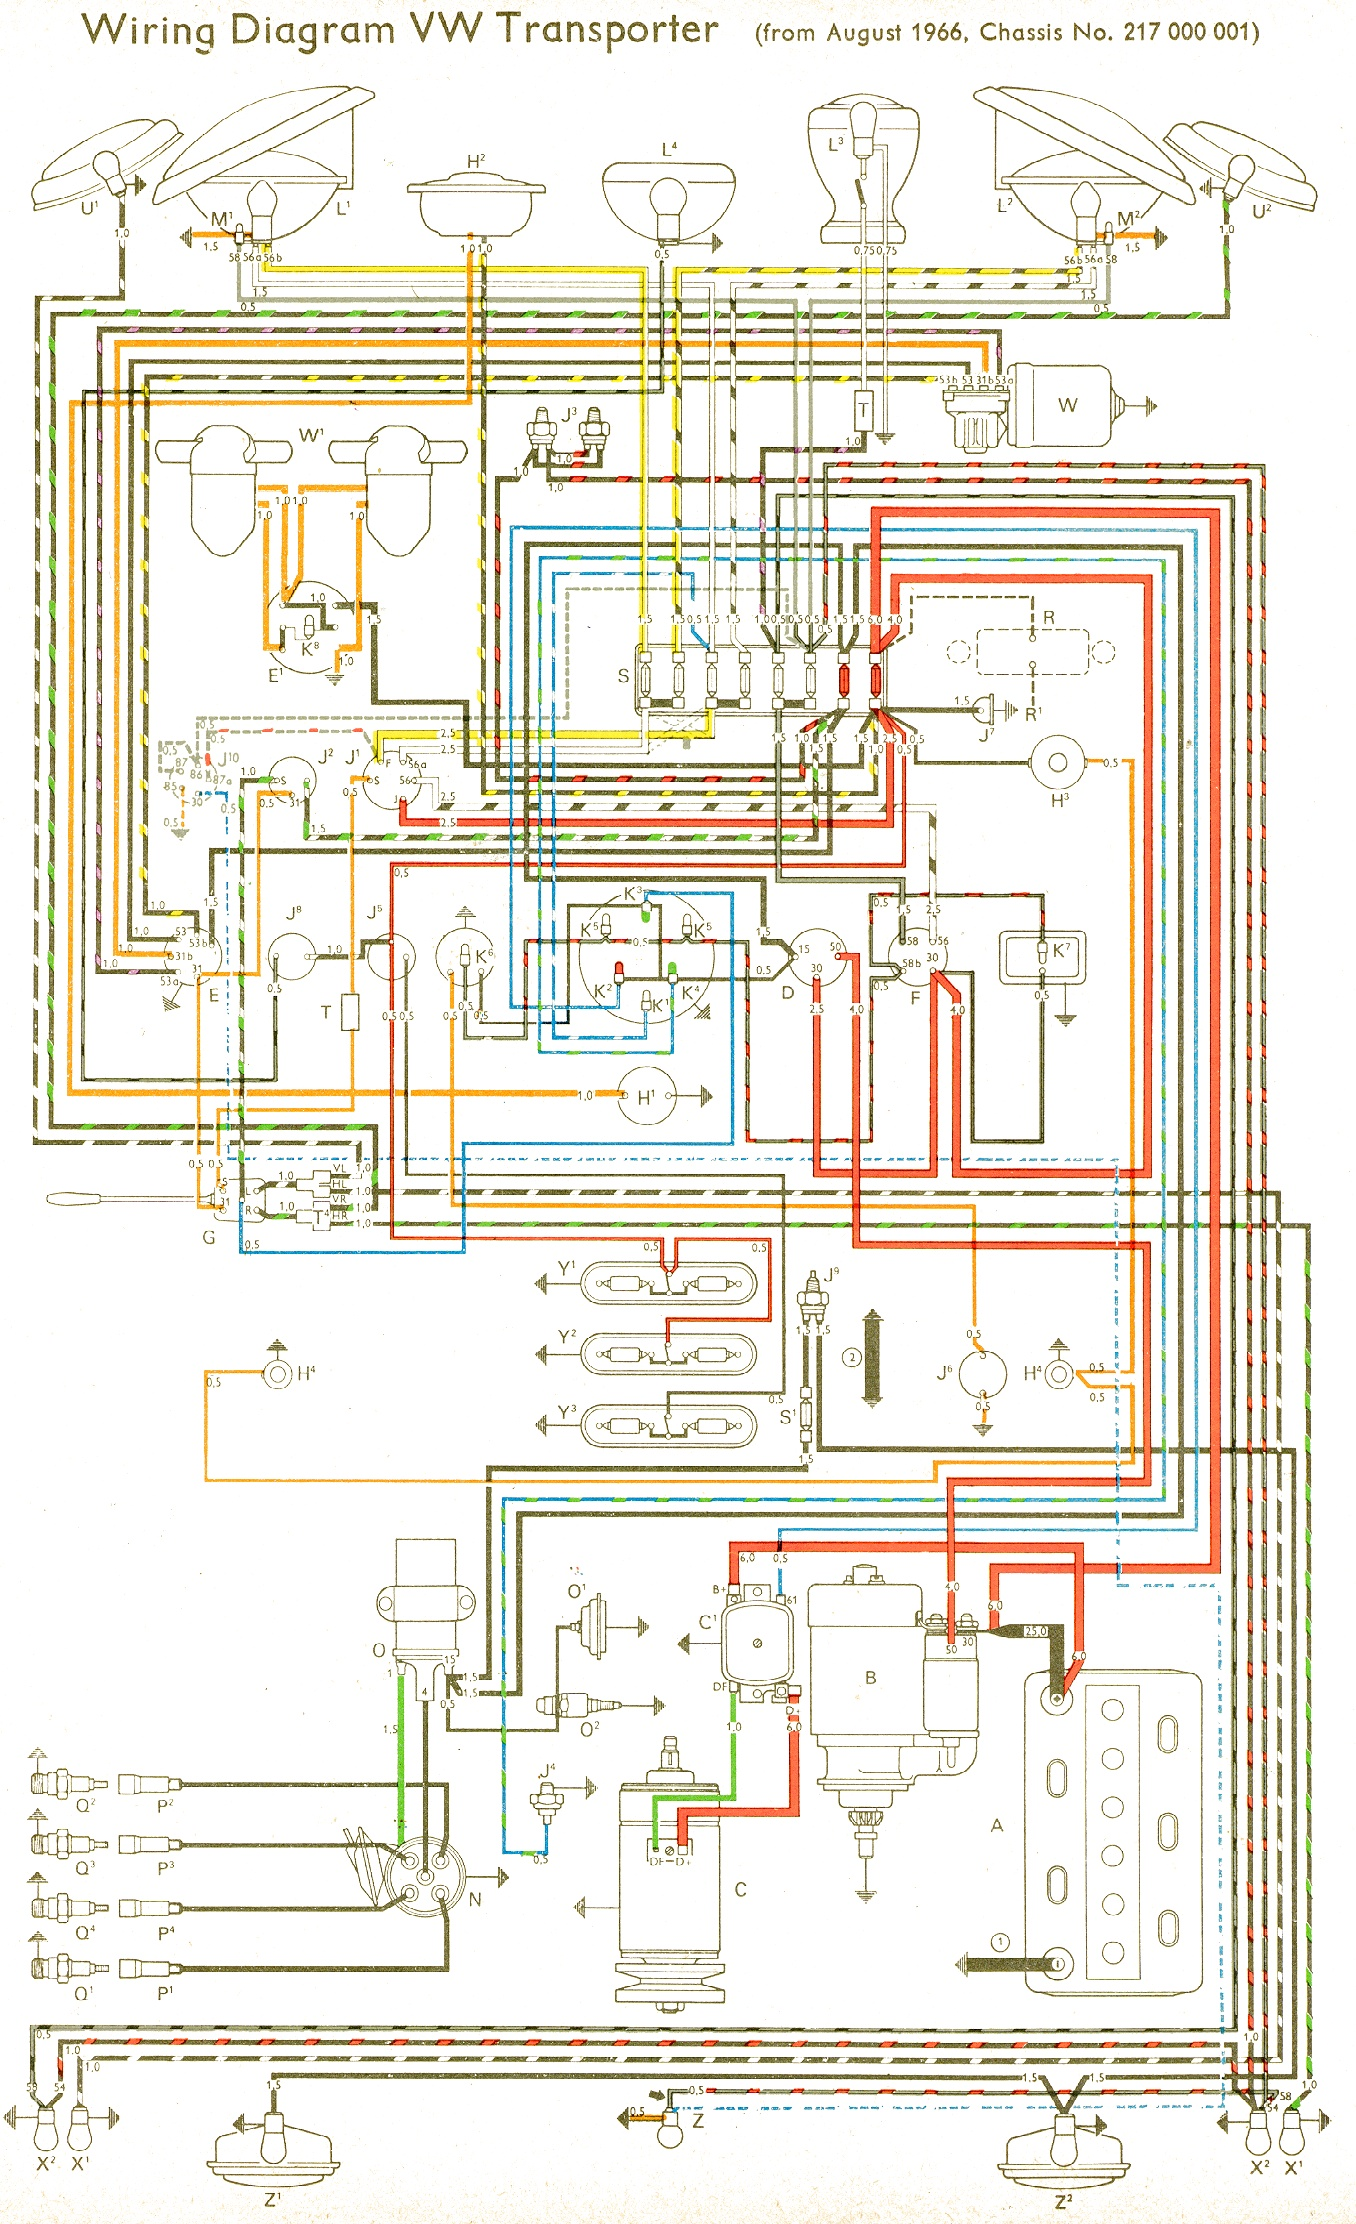 1g Dsm Ecu Wiring Diagram Image Details Fuse Box Vw Bus